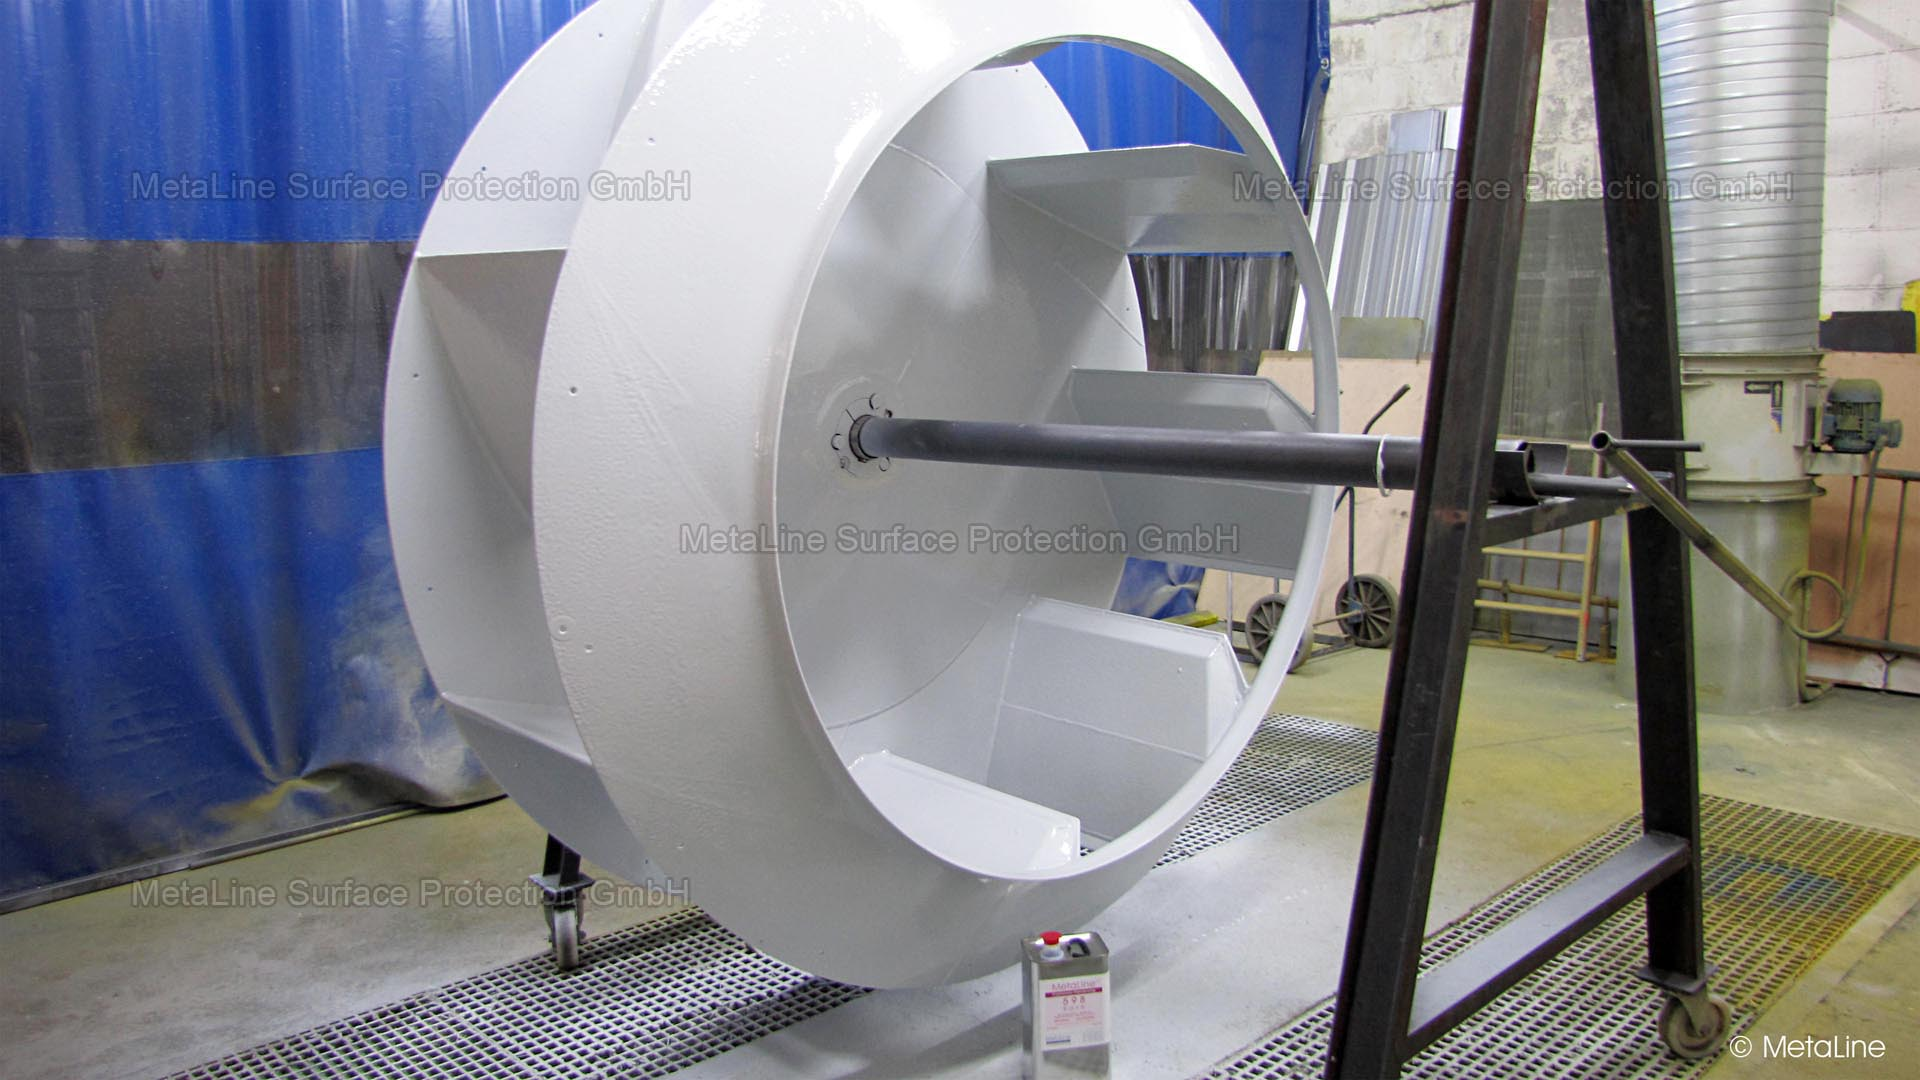 <!-- START: ConditionalContent --><!-- END: ConditionalContent -->   <!-- START: ConditionalContent --> Fan; Coating; Weight; erosion; Blade; Propeller; Rotor; Corrosion, Ventilation; Blade; Vane <!-- END: ConditionalContent -->   <!-- START: ConditionalContent --><!-- END: ConditionalContent -->   <!-- START: ConditionalContent --><!-- END: ConditionalContent -->